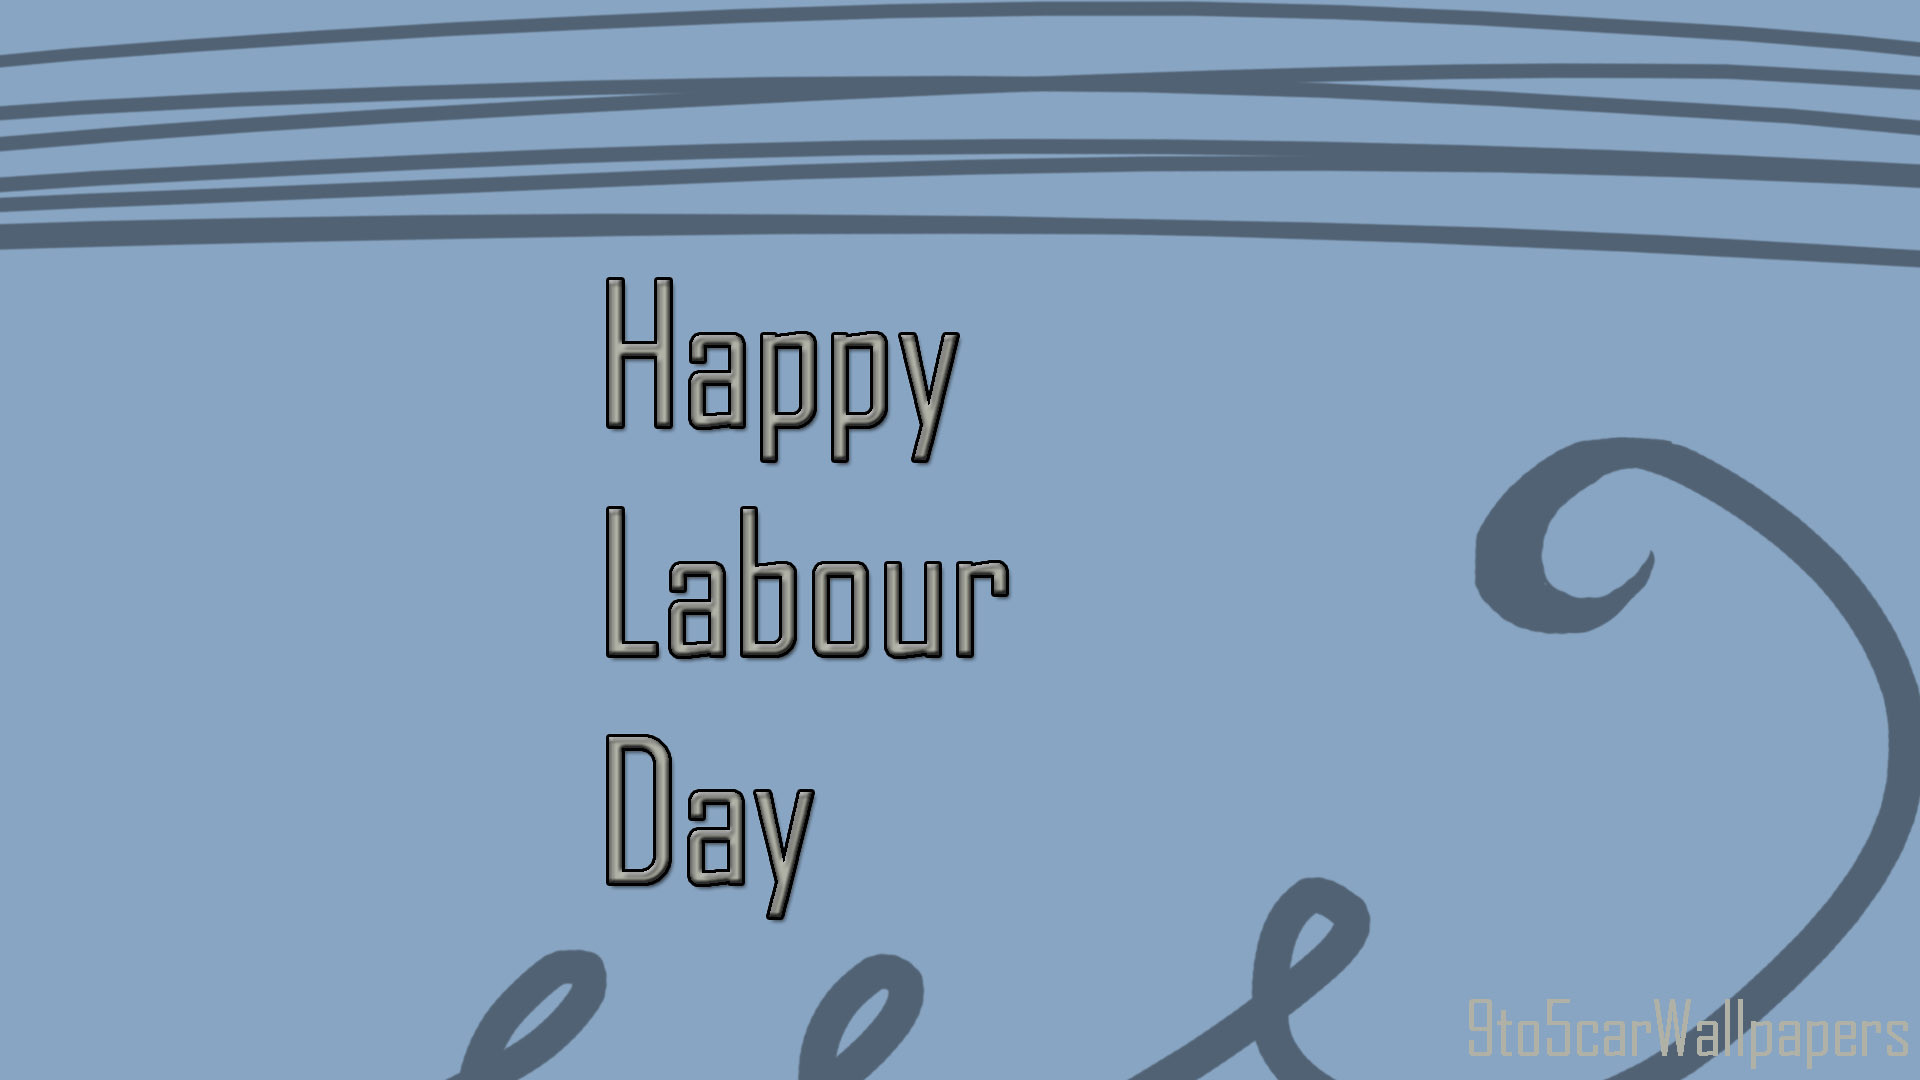 Res: 1920x1080, Labour Day Images & Wallpapers 2018 labour-day-images-2018